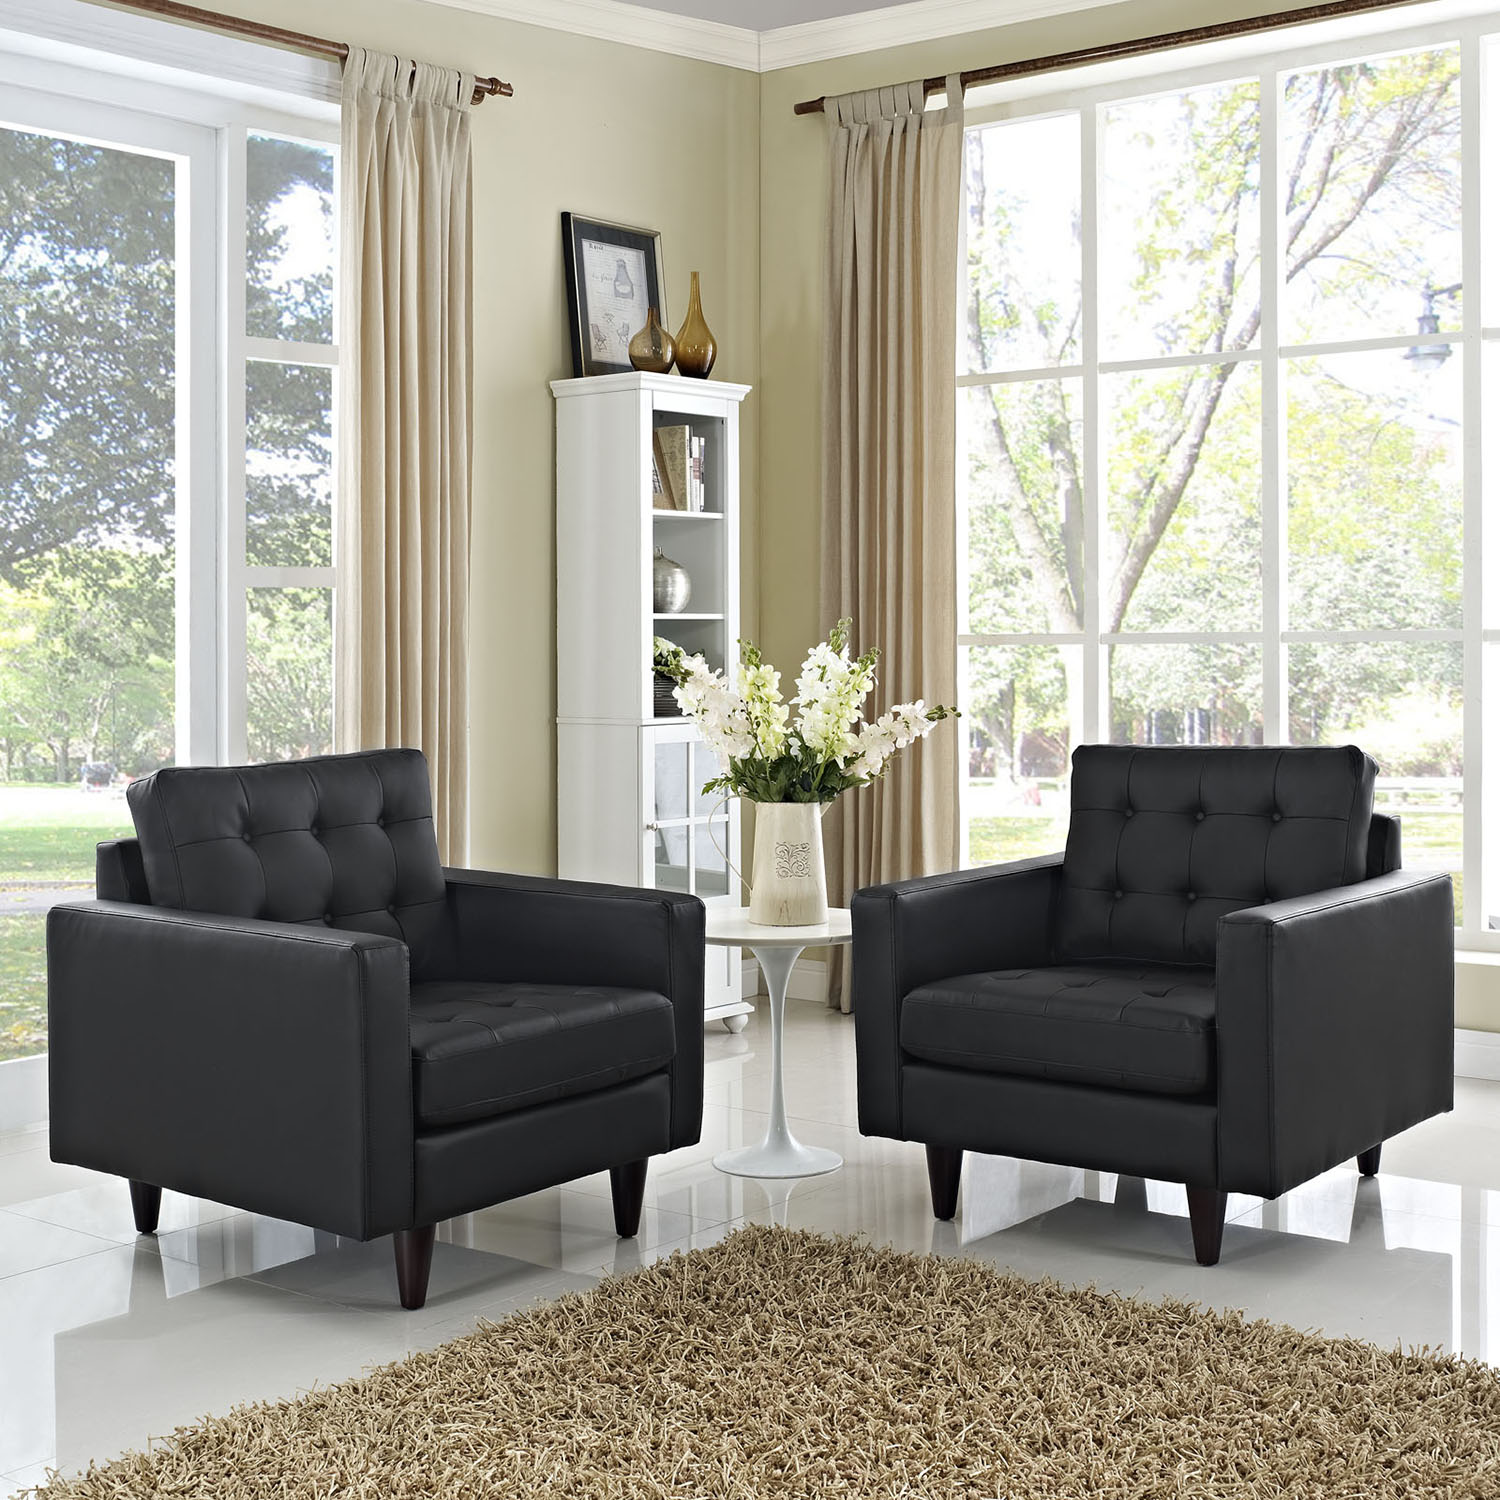 Empress Bottom Tufted Leather Armchair - Black (Set of 2) - EEI-1282-BLK